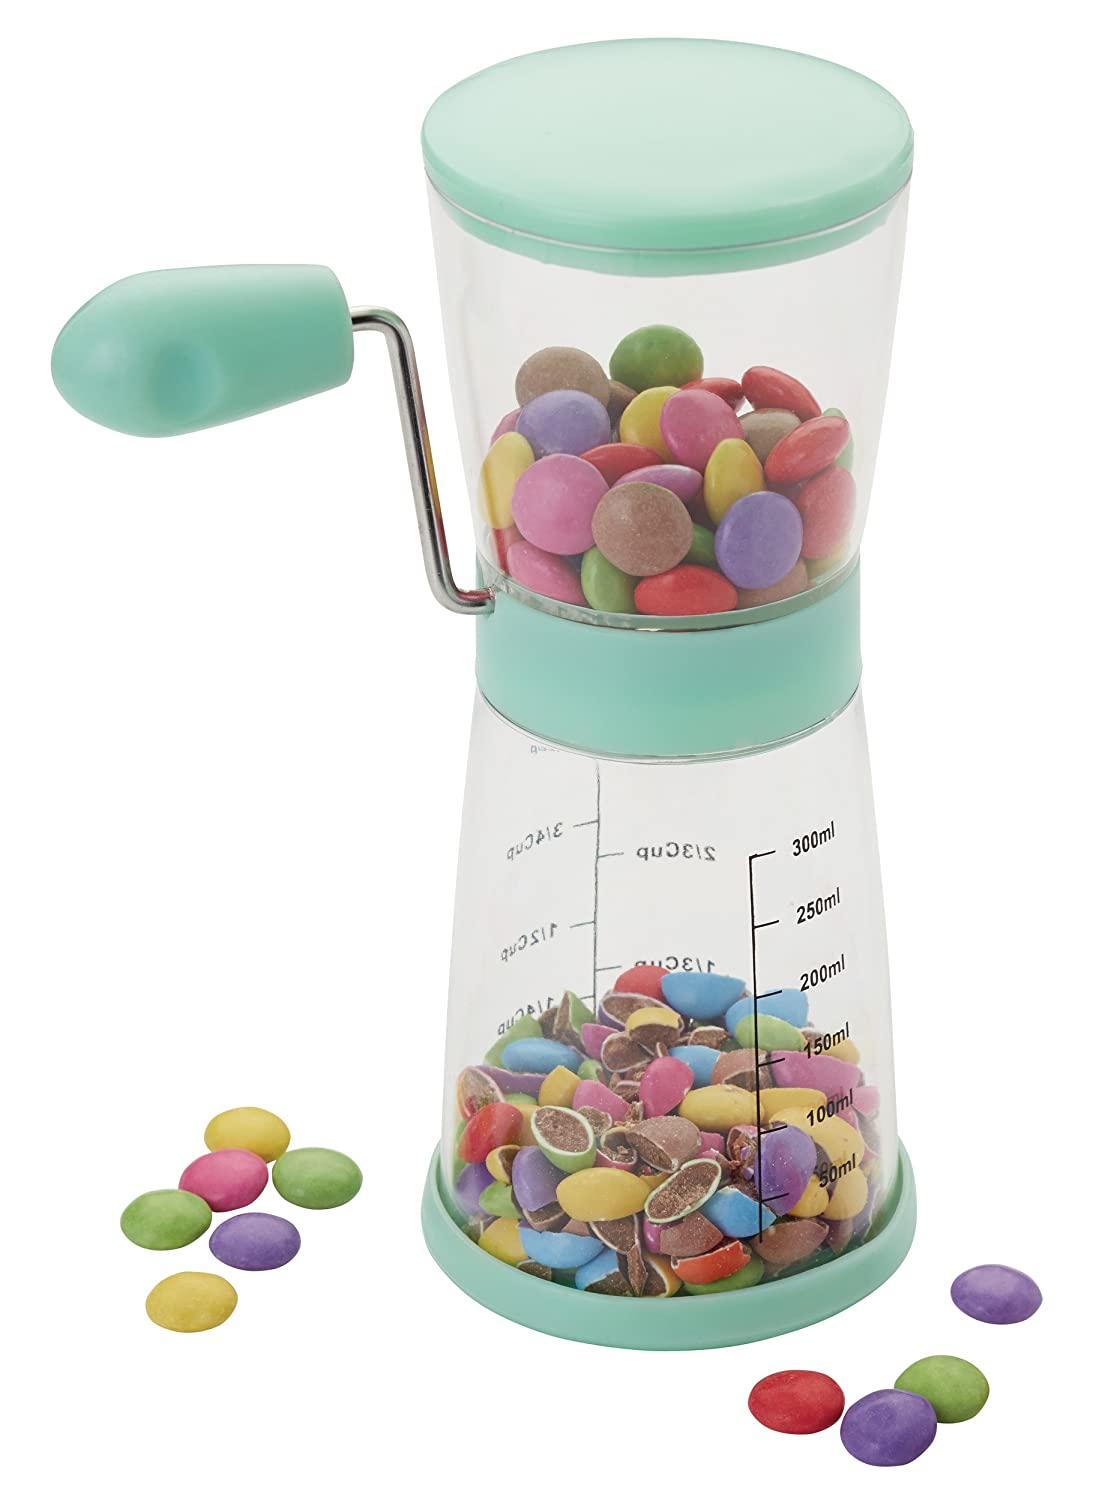 Amazon.com: 14 x 19.5cm Sweetly Does It Cake Topping Grinder: Kitchen & Dining